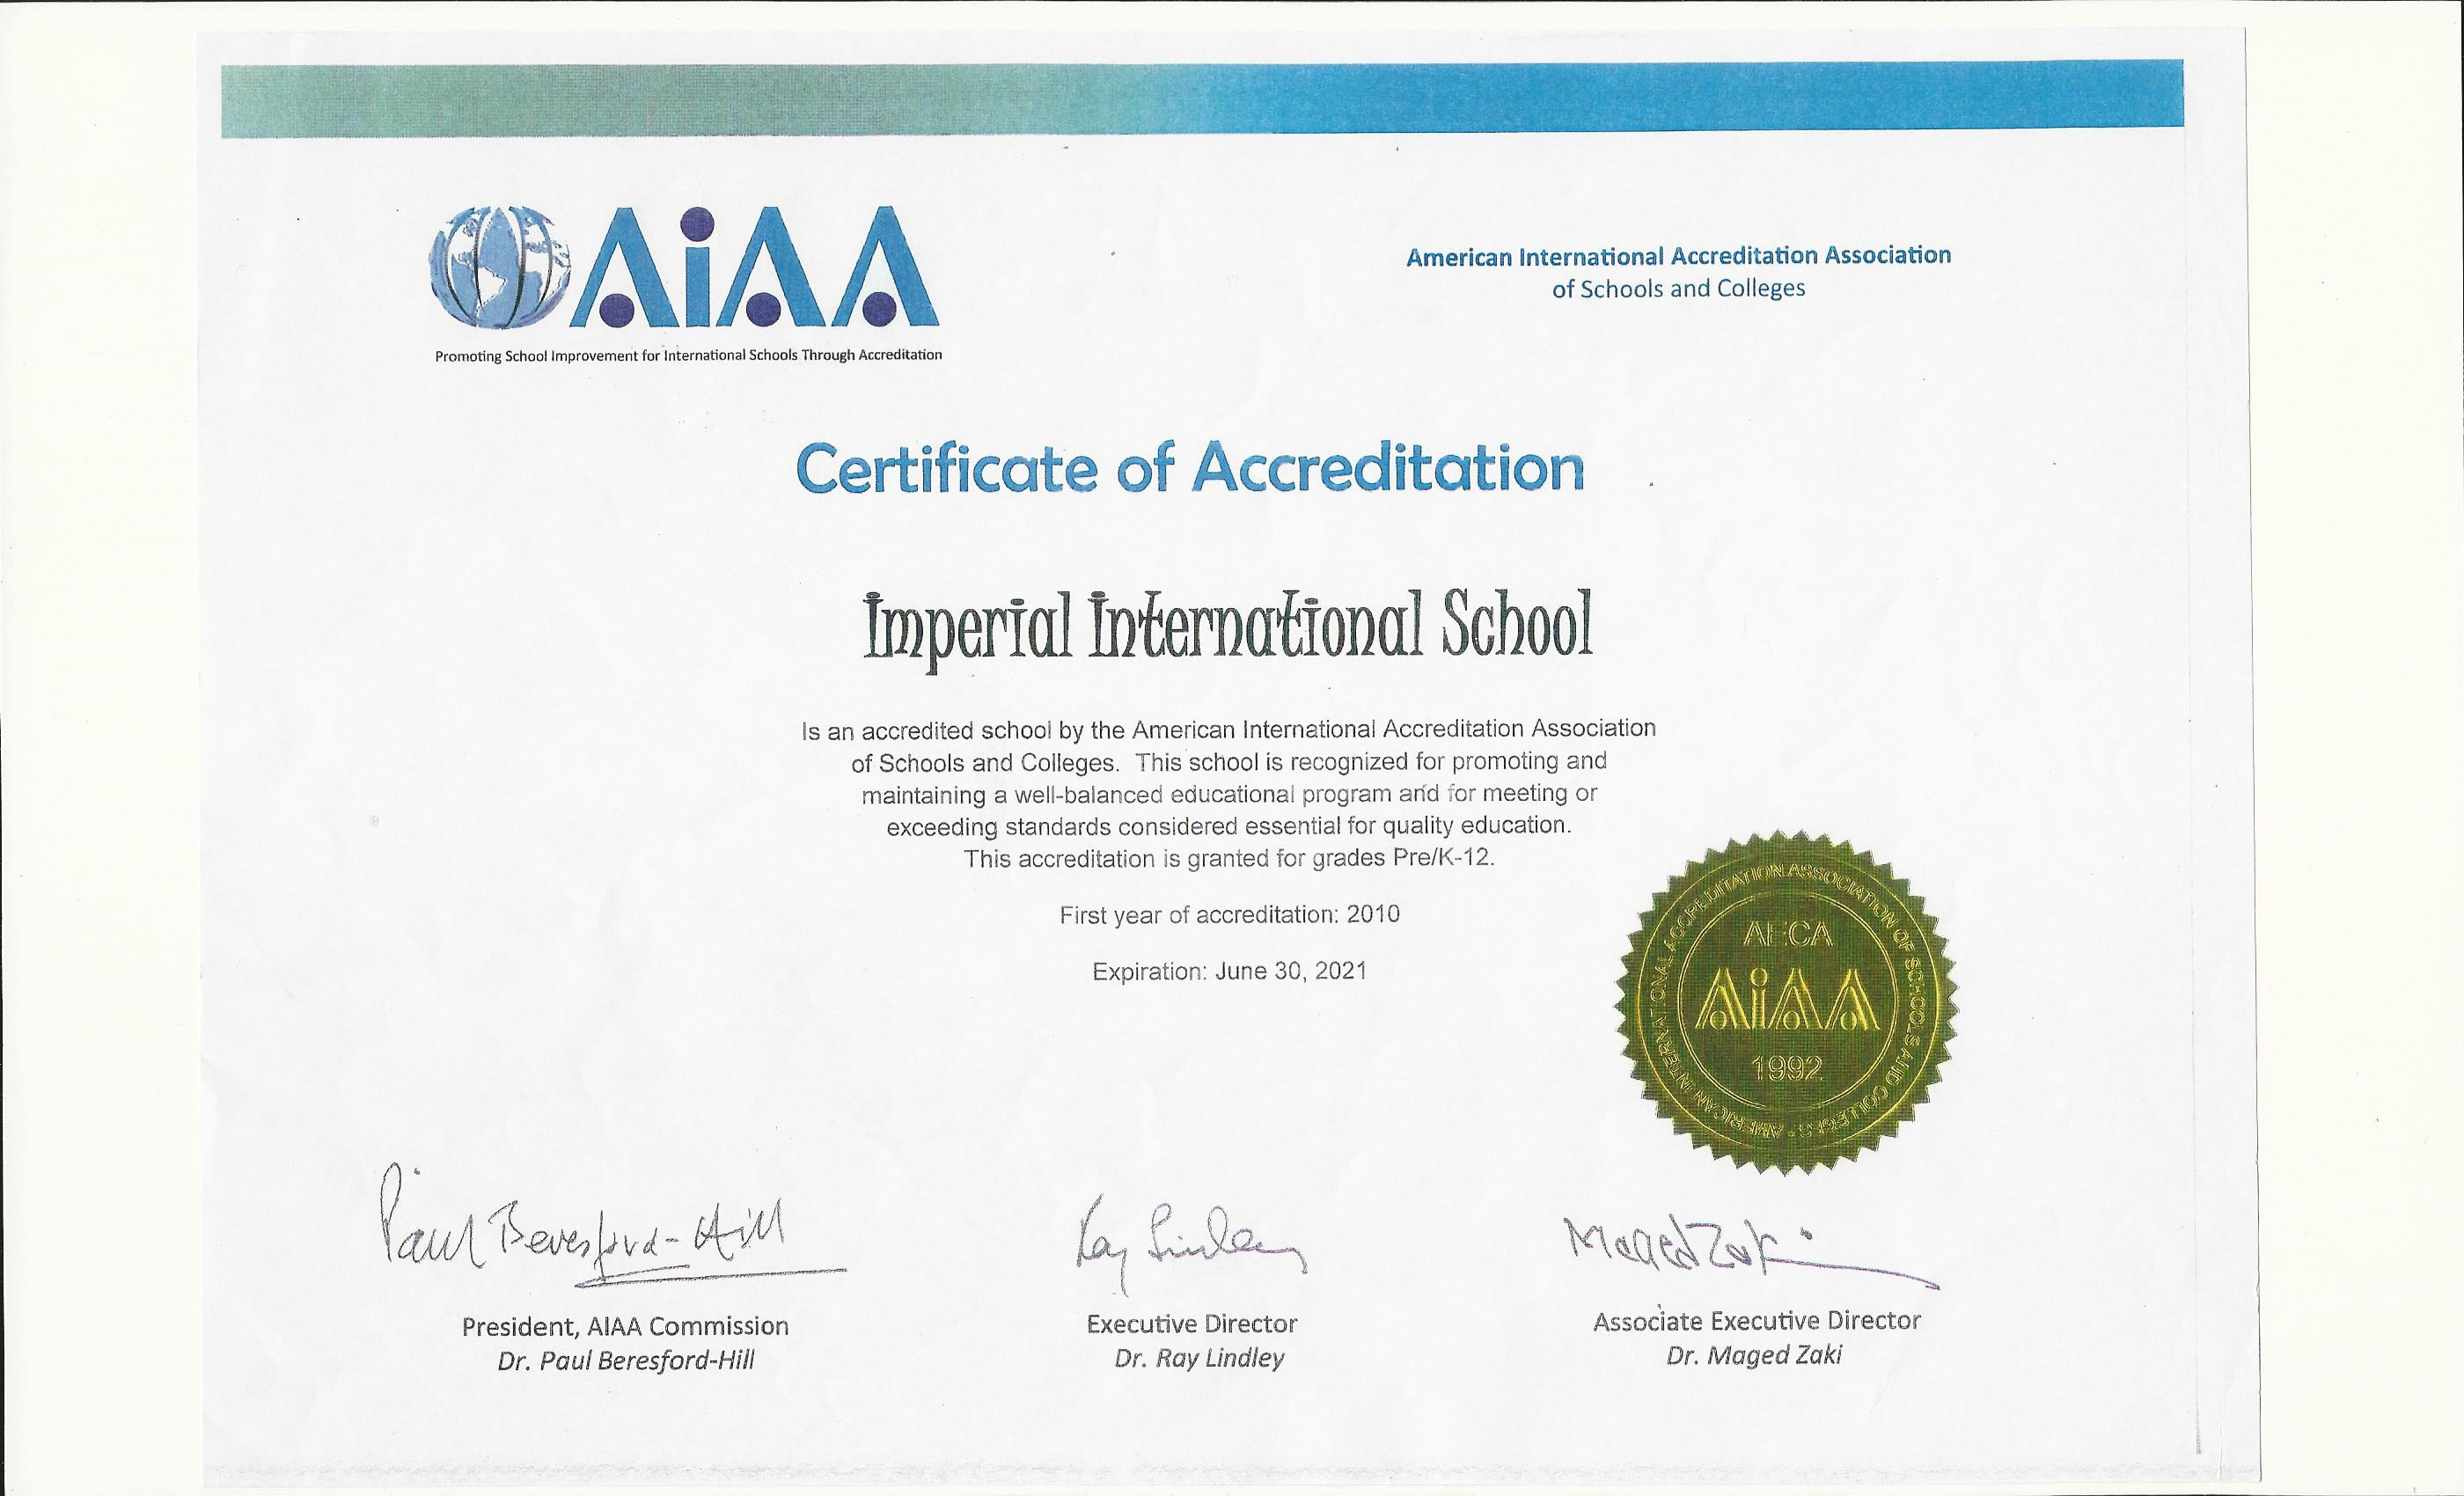 American International Accreditation